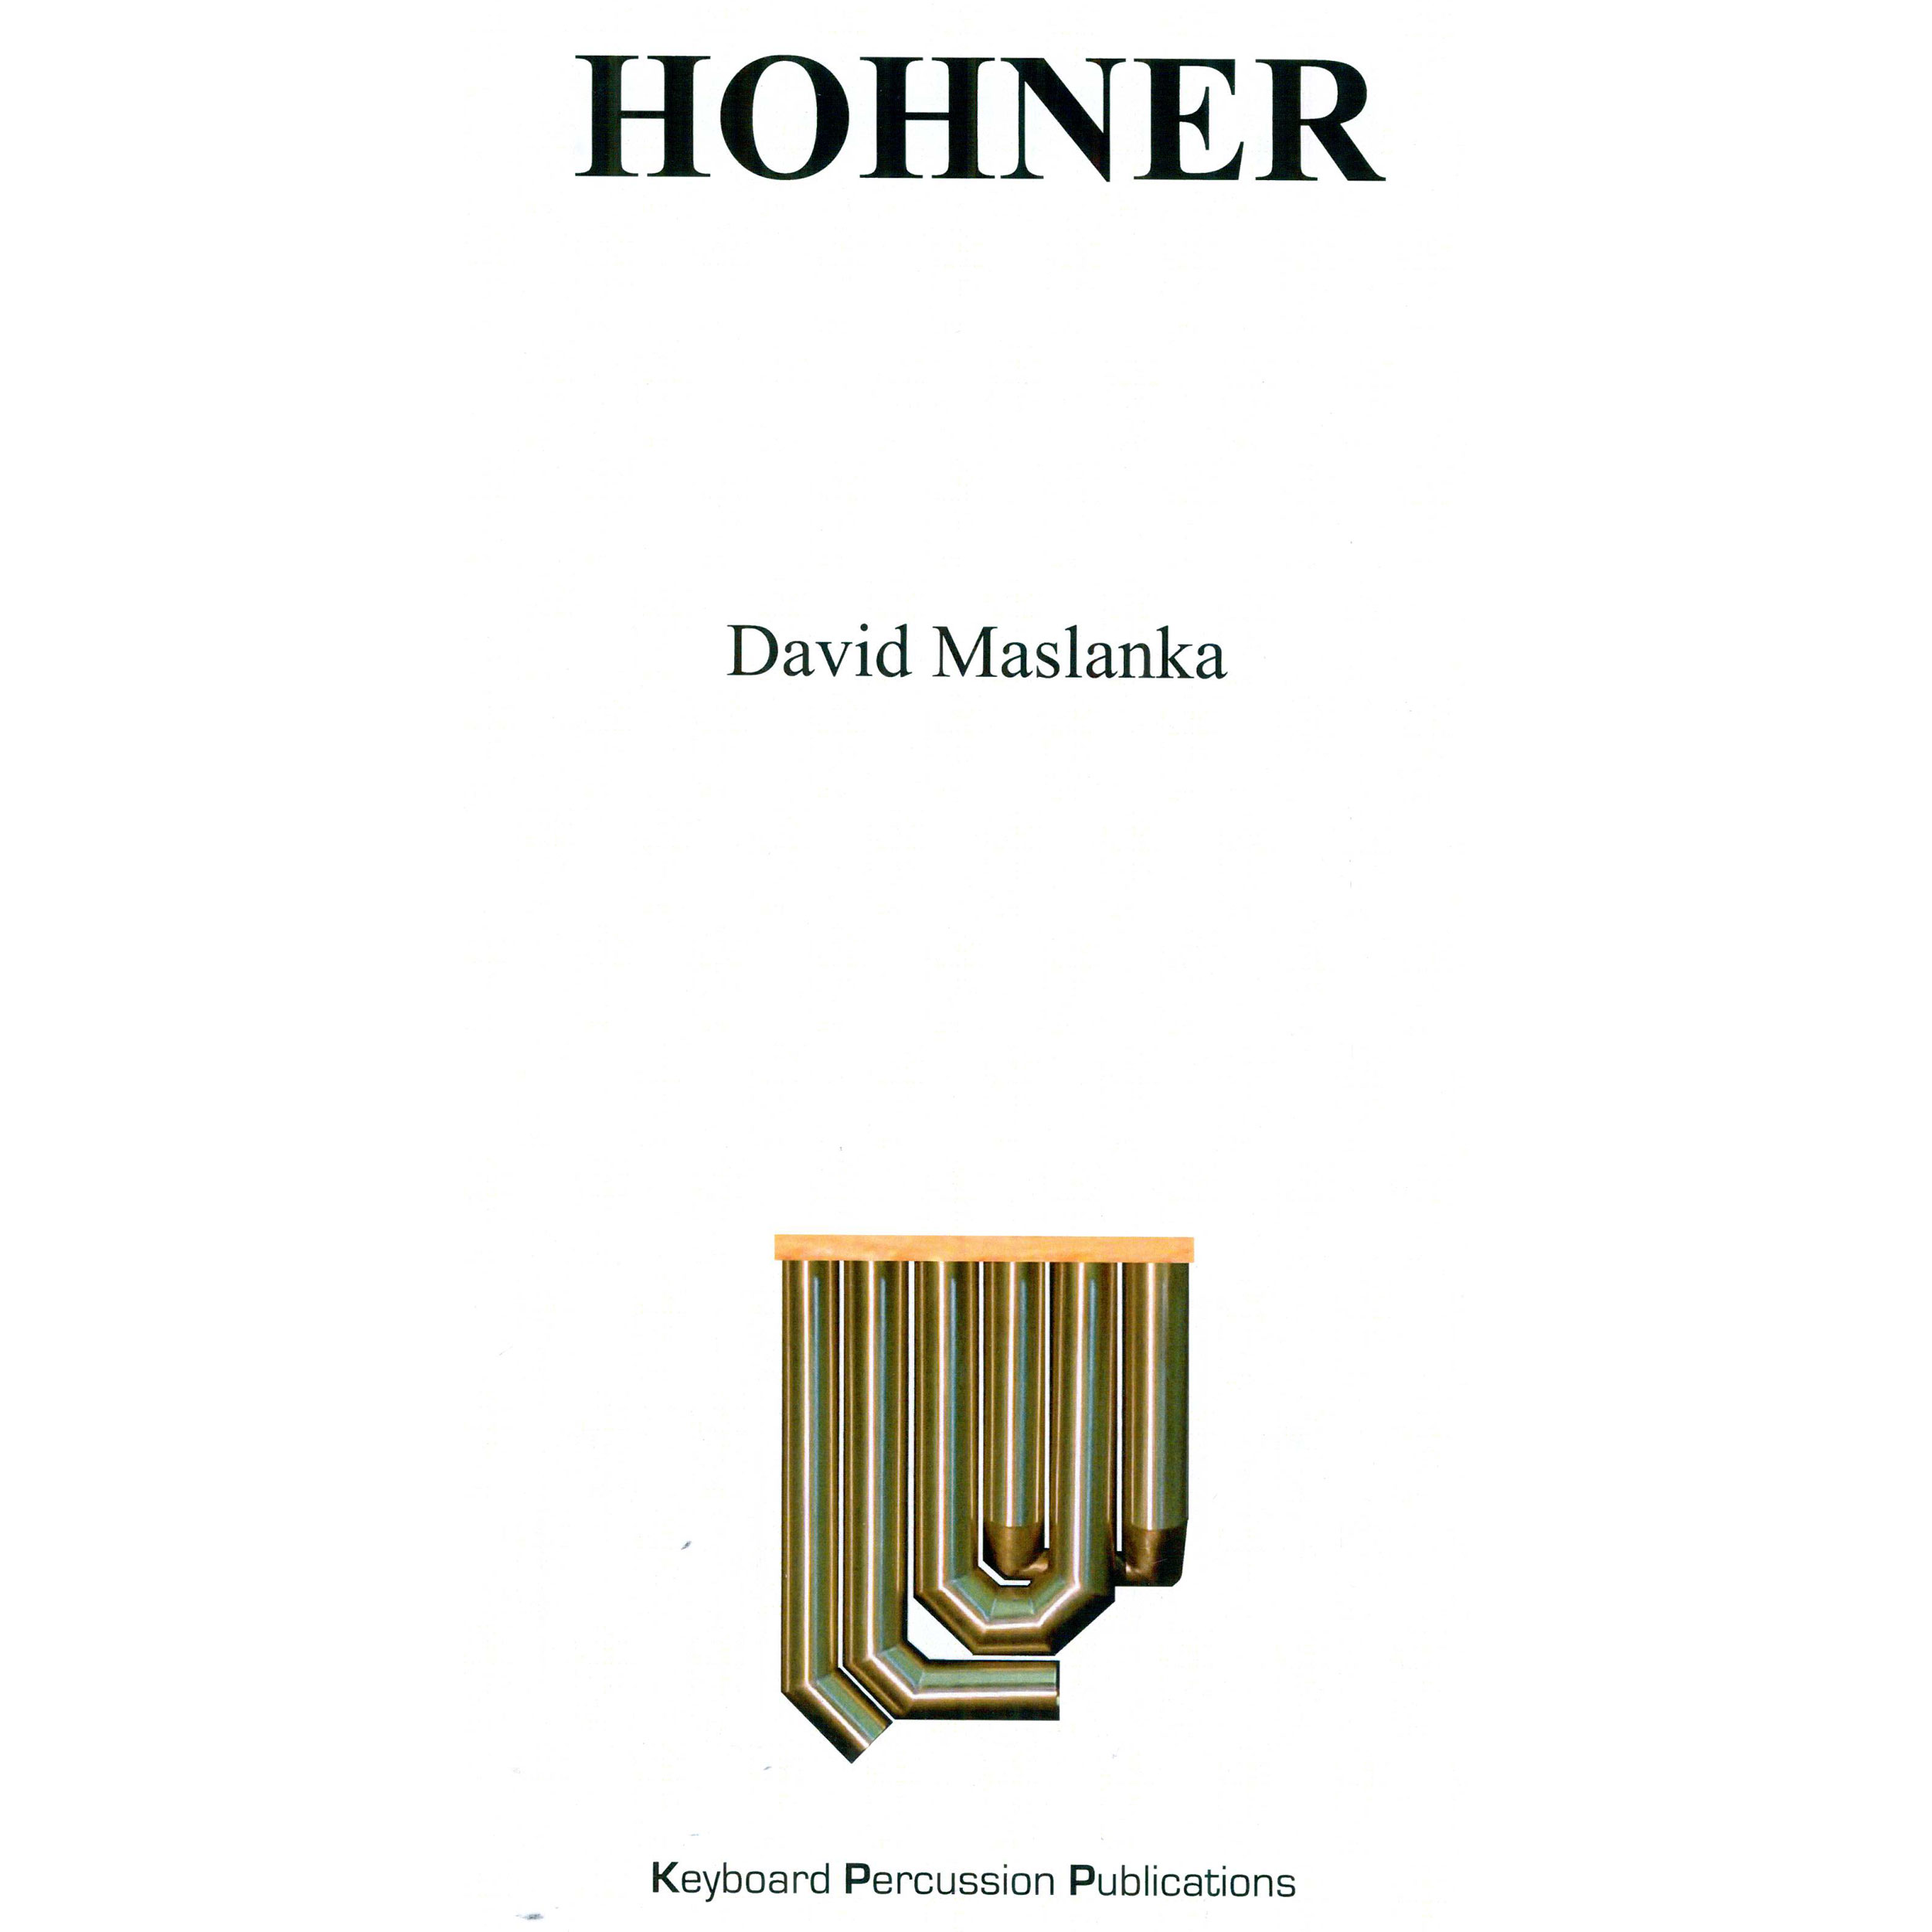 Hohner by David Maslanka